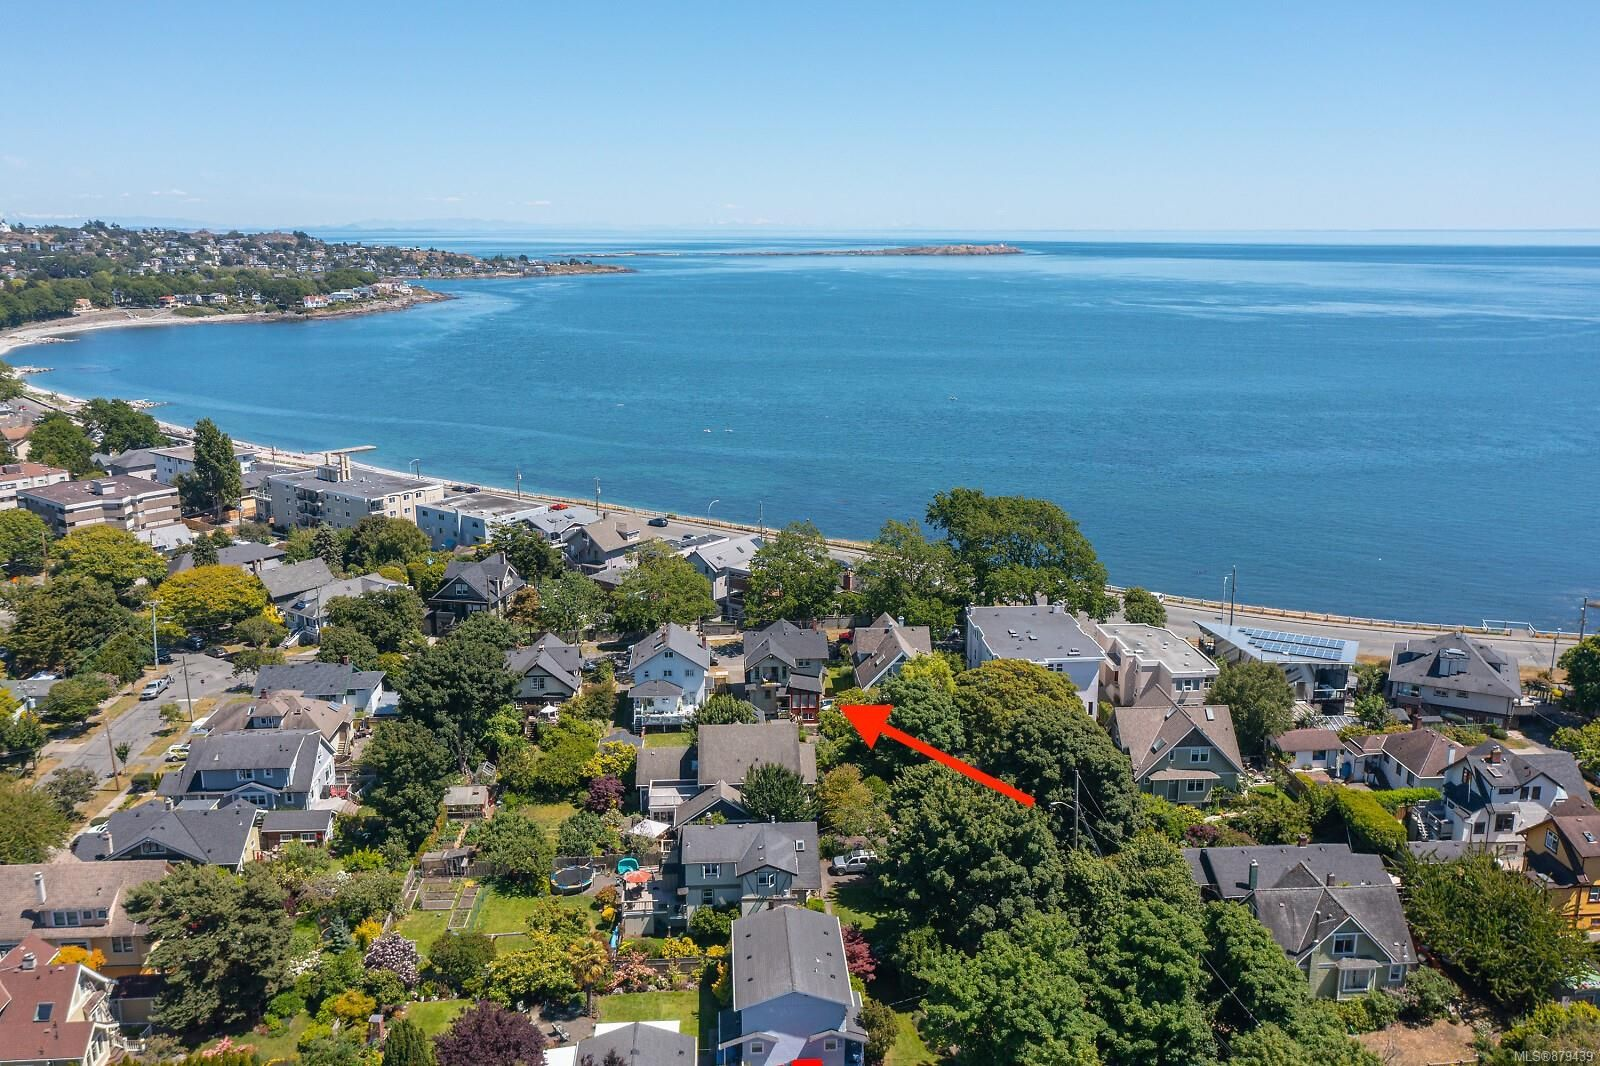 Main Photo: 20 Bushby St in : Vi Fairfield East House for sale (Victoria)  : MLS®# 879439